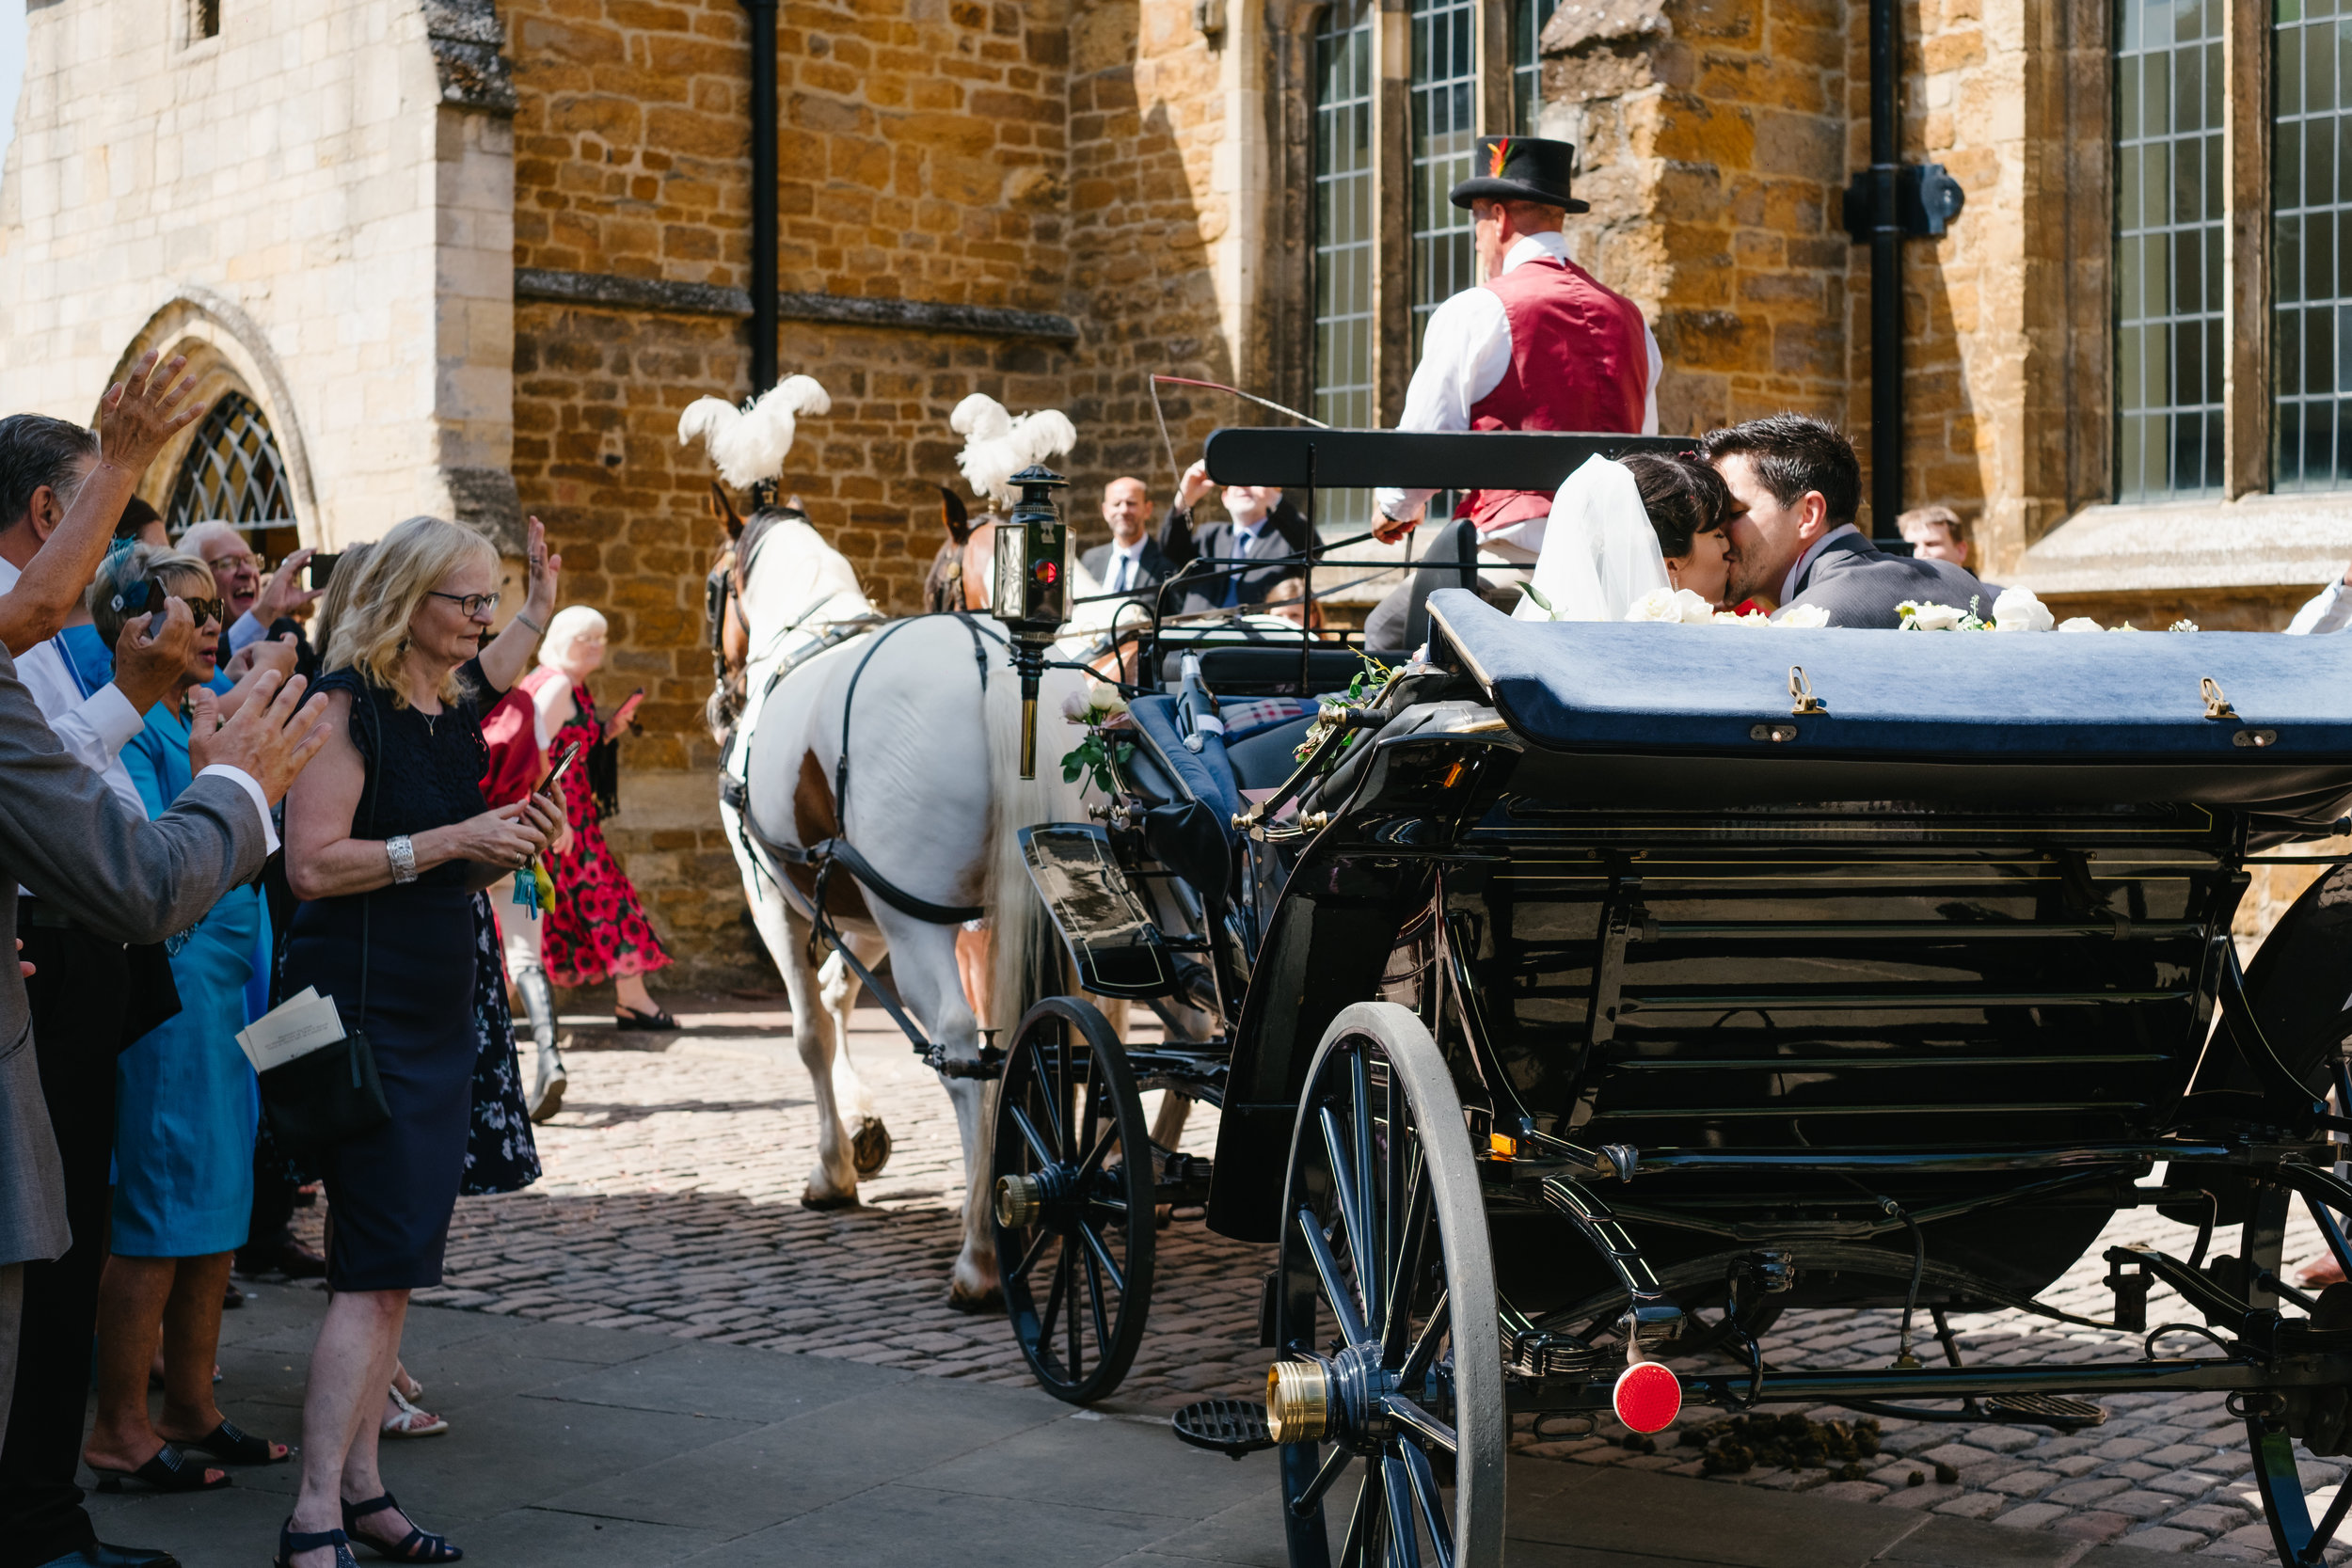 bride-and-groom-in-horse-and-carriage.jpg